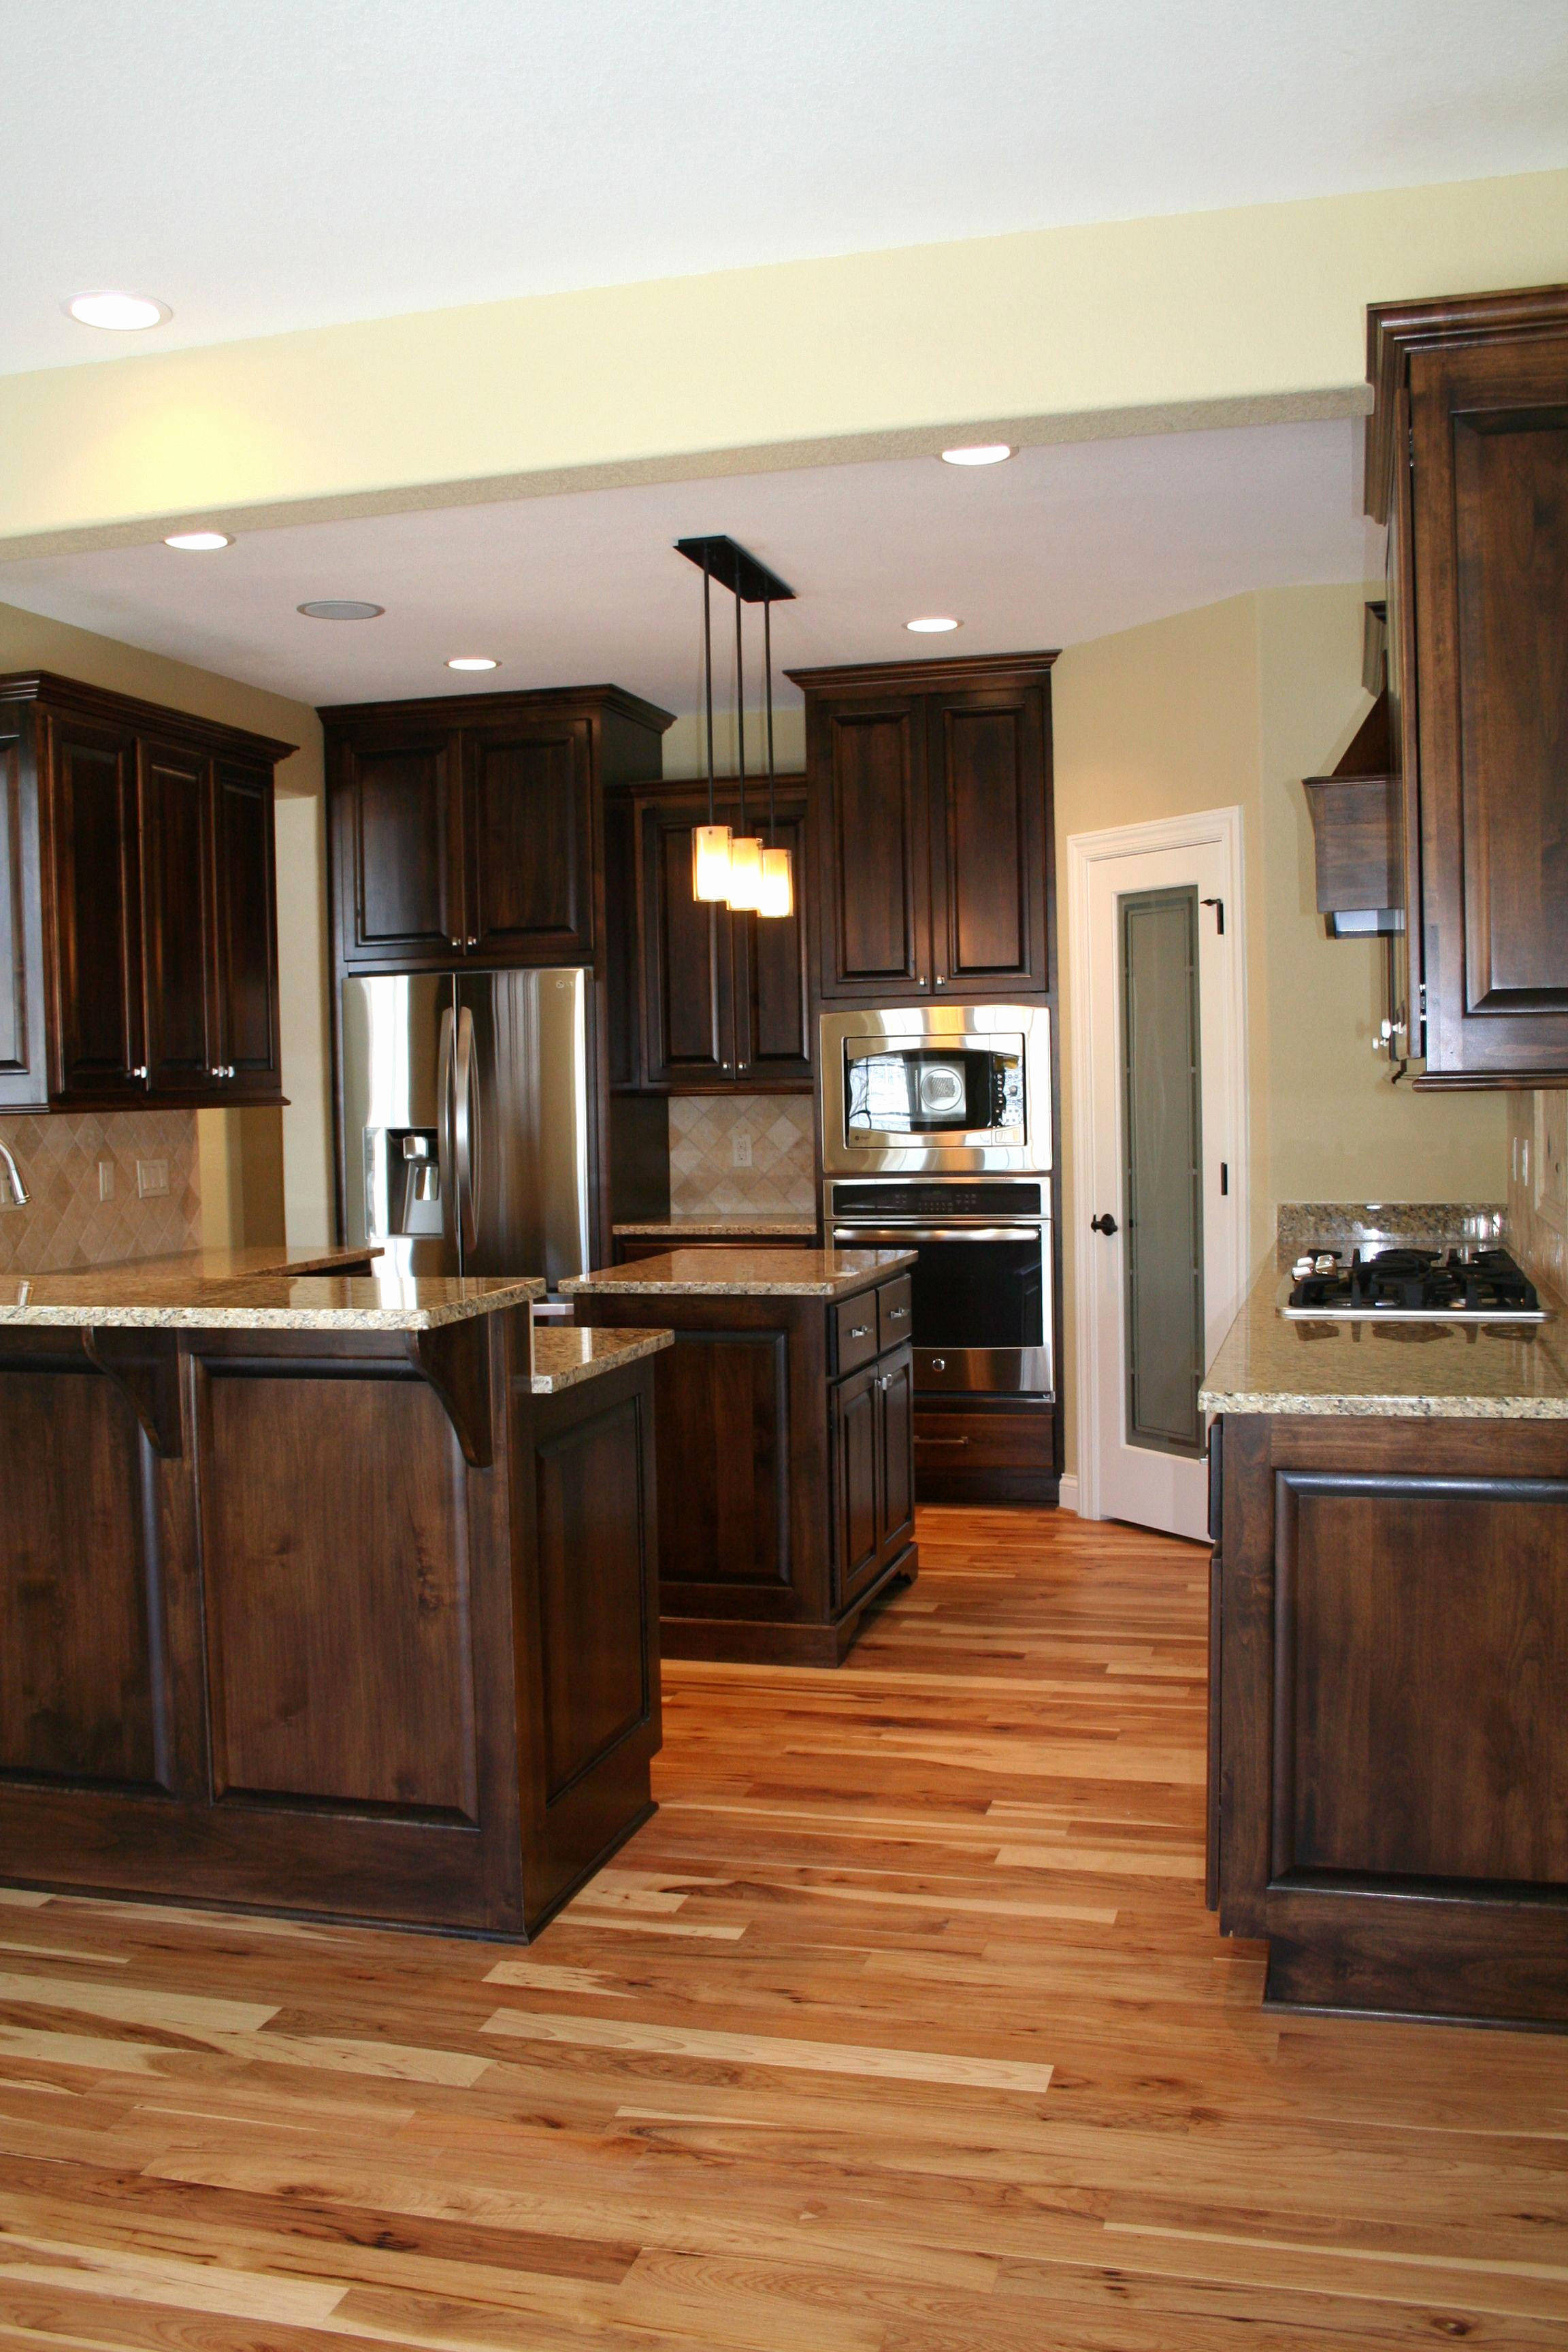 hardwood flooring suppliers kansas city of 36 elegant granite countertops kansas city coffee table and regarding granite countertops kansas city new hardwood floors in kitchen row home kitchen renovation sink in